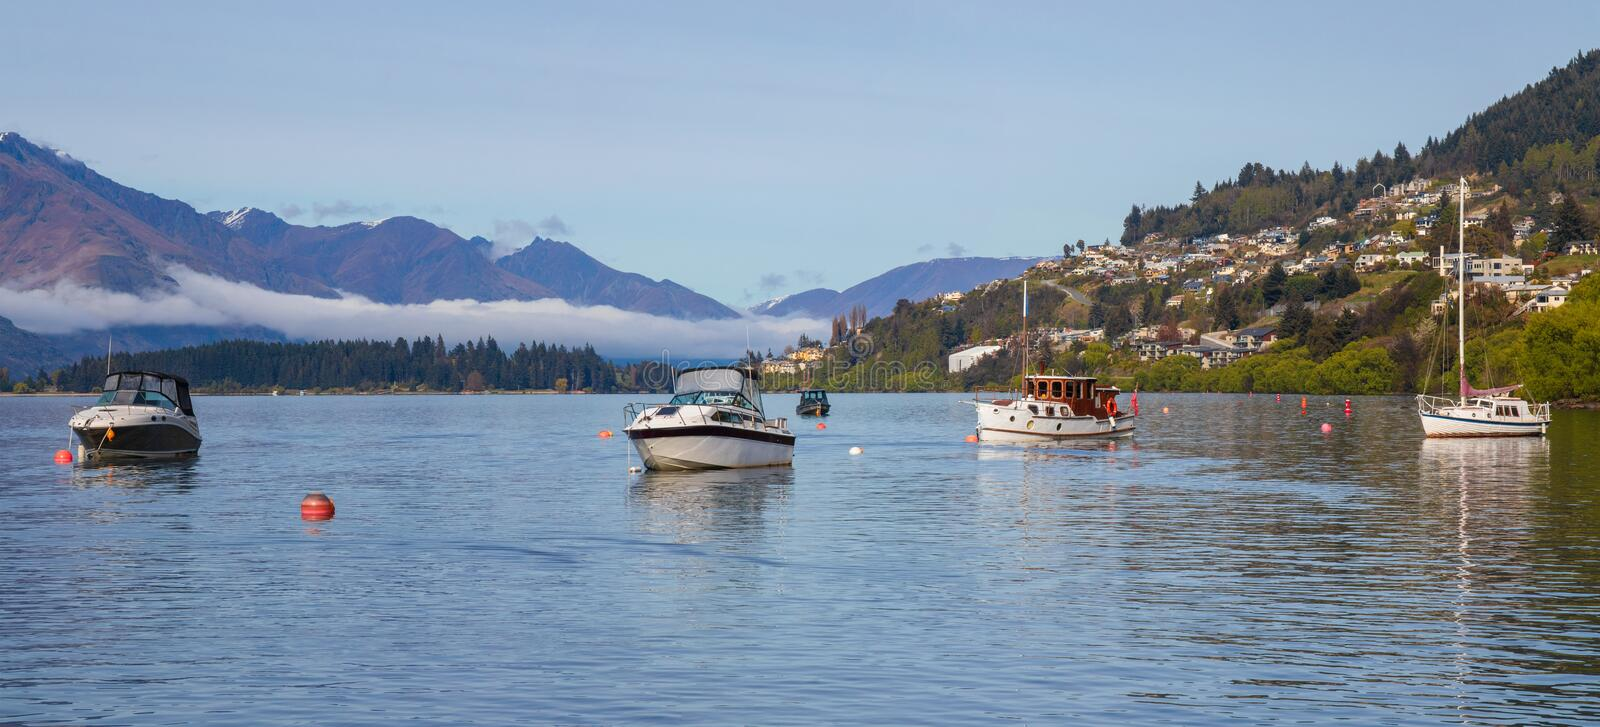 Morning in Queenstown, Wakatipu lake, New Zealand stock photography